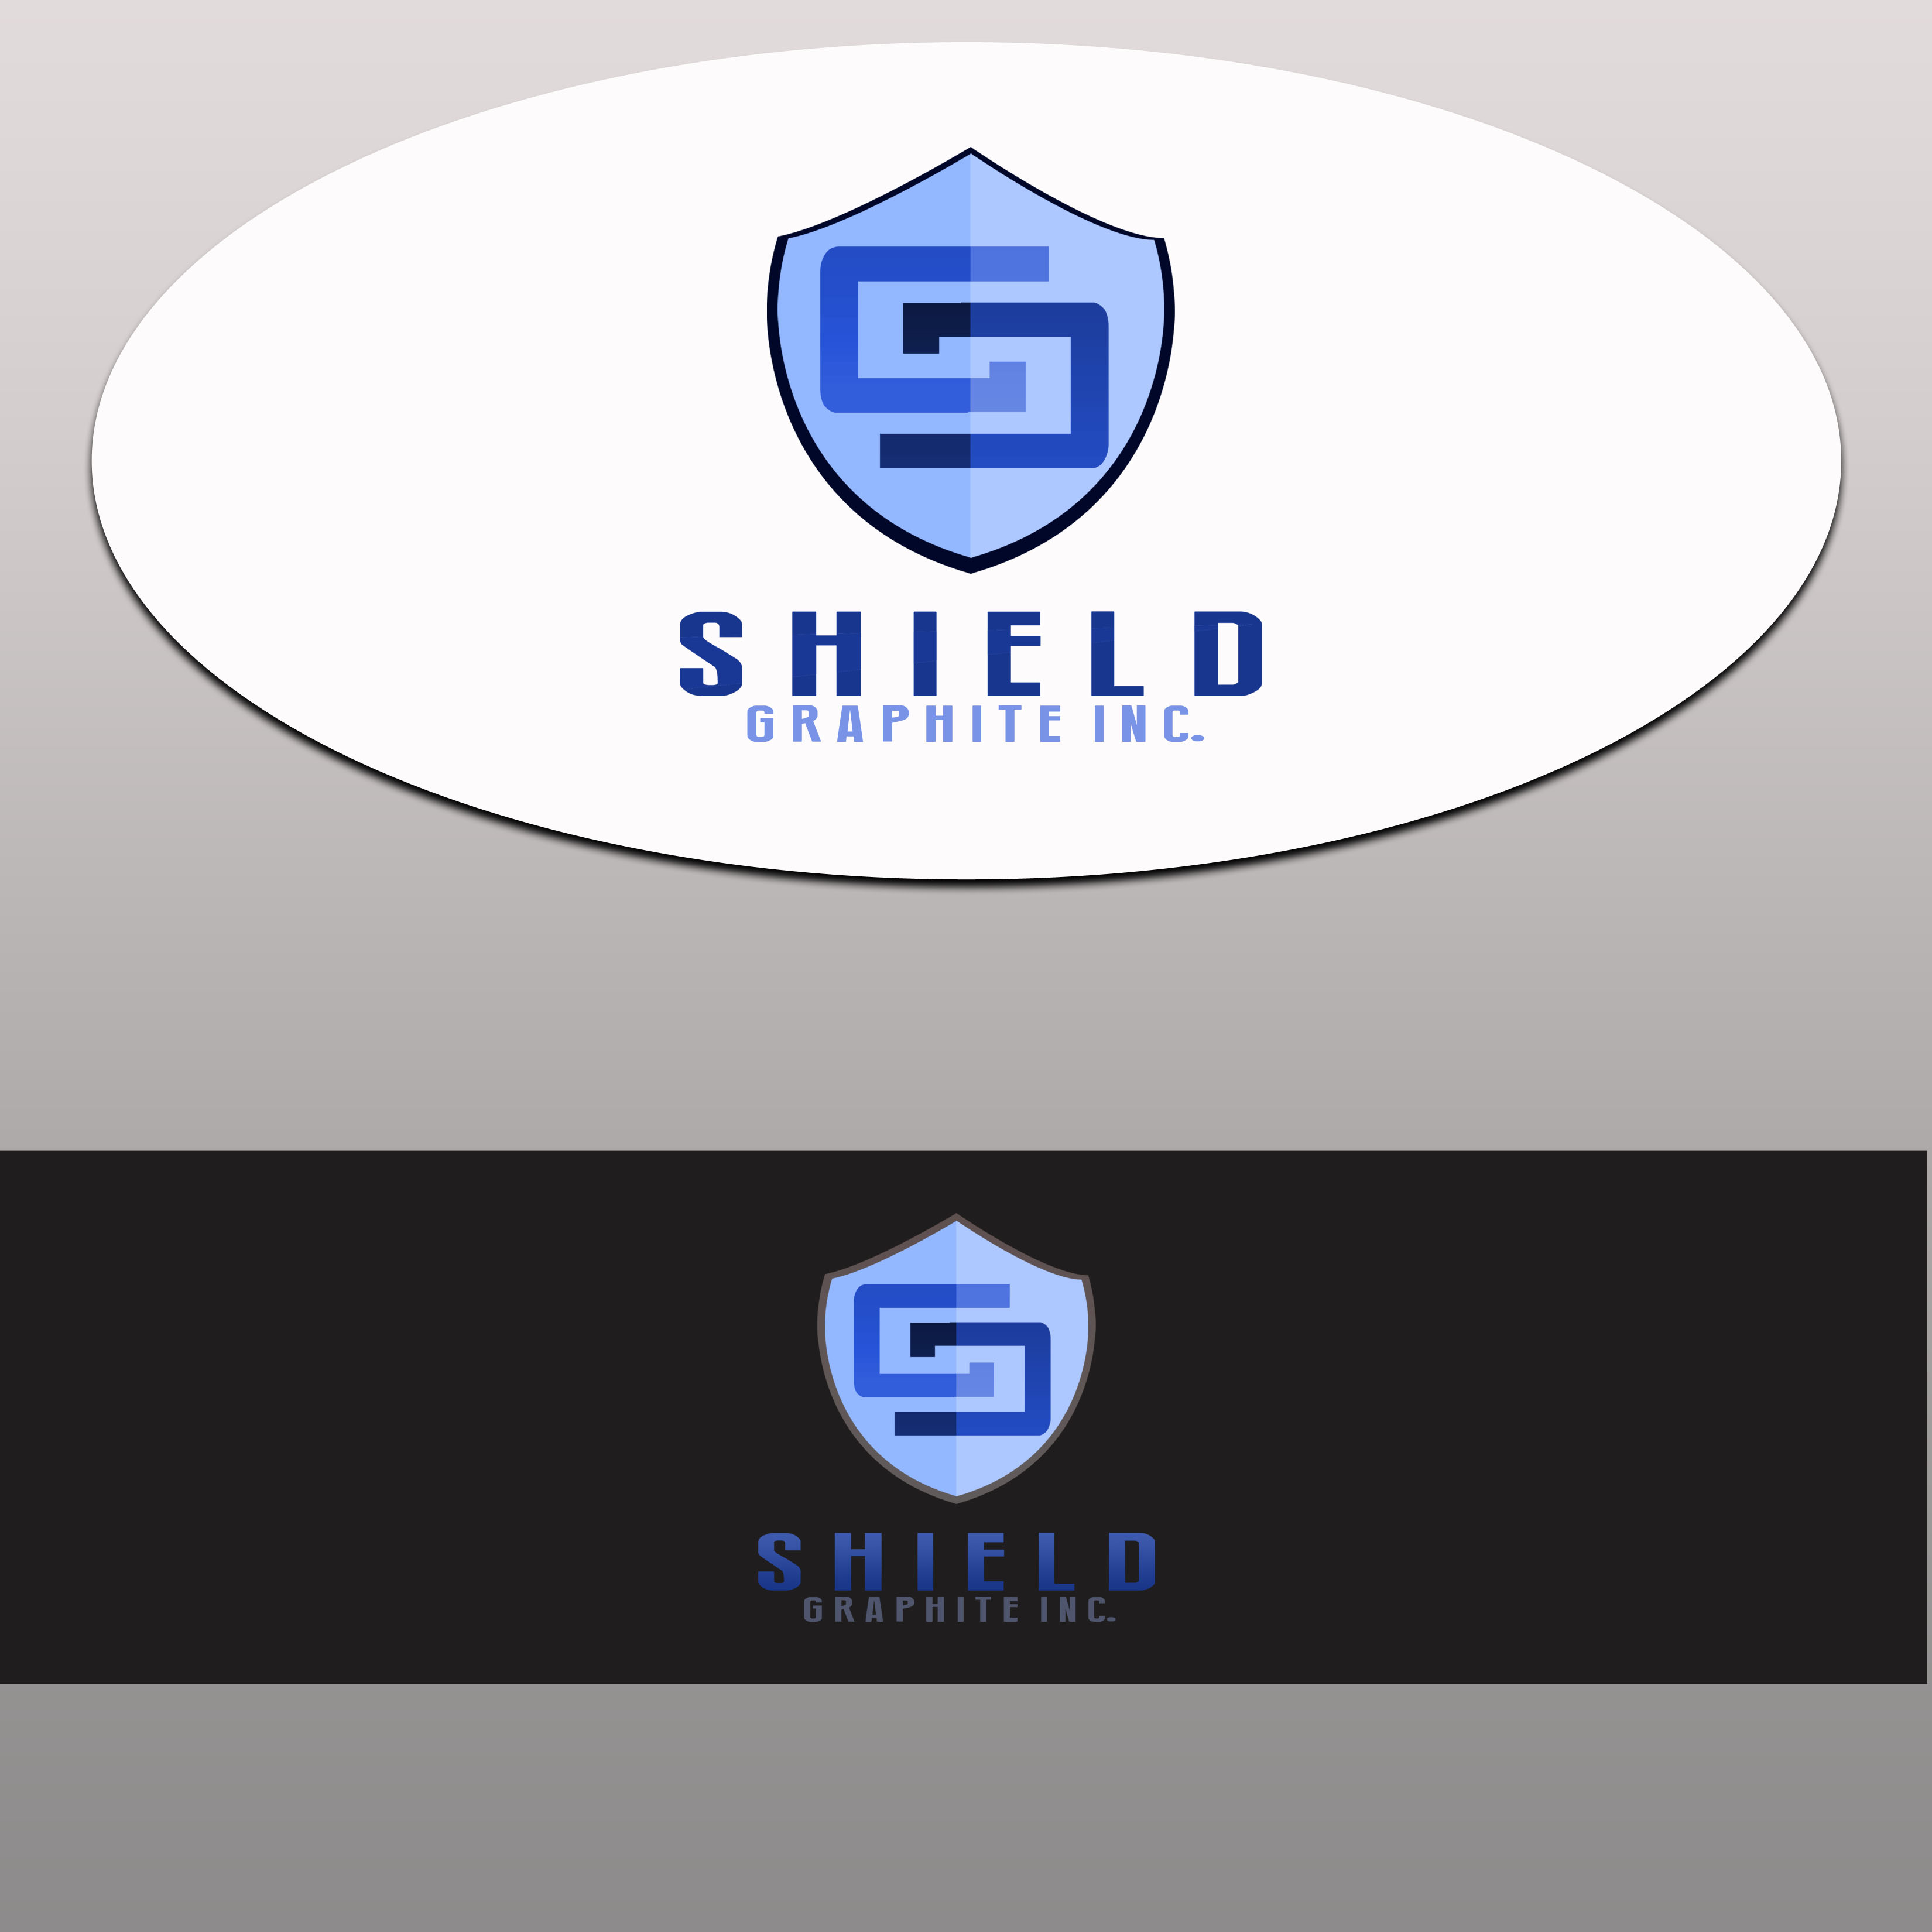 Logo Design by Allan Esclamado - Entry No. 32 in the Logo Design Contest Imaginative Logo Design for Shield Graphite Inc..